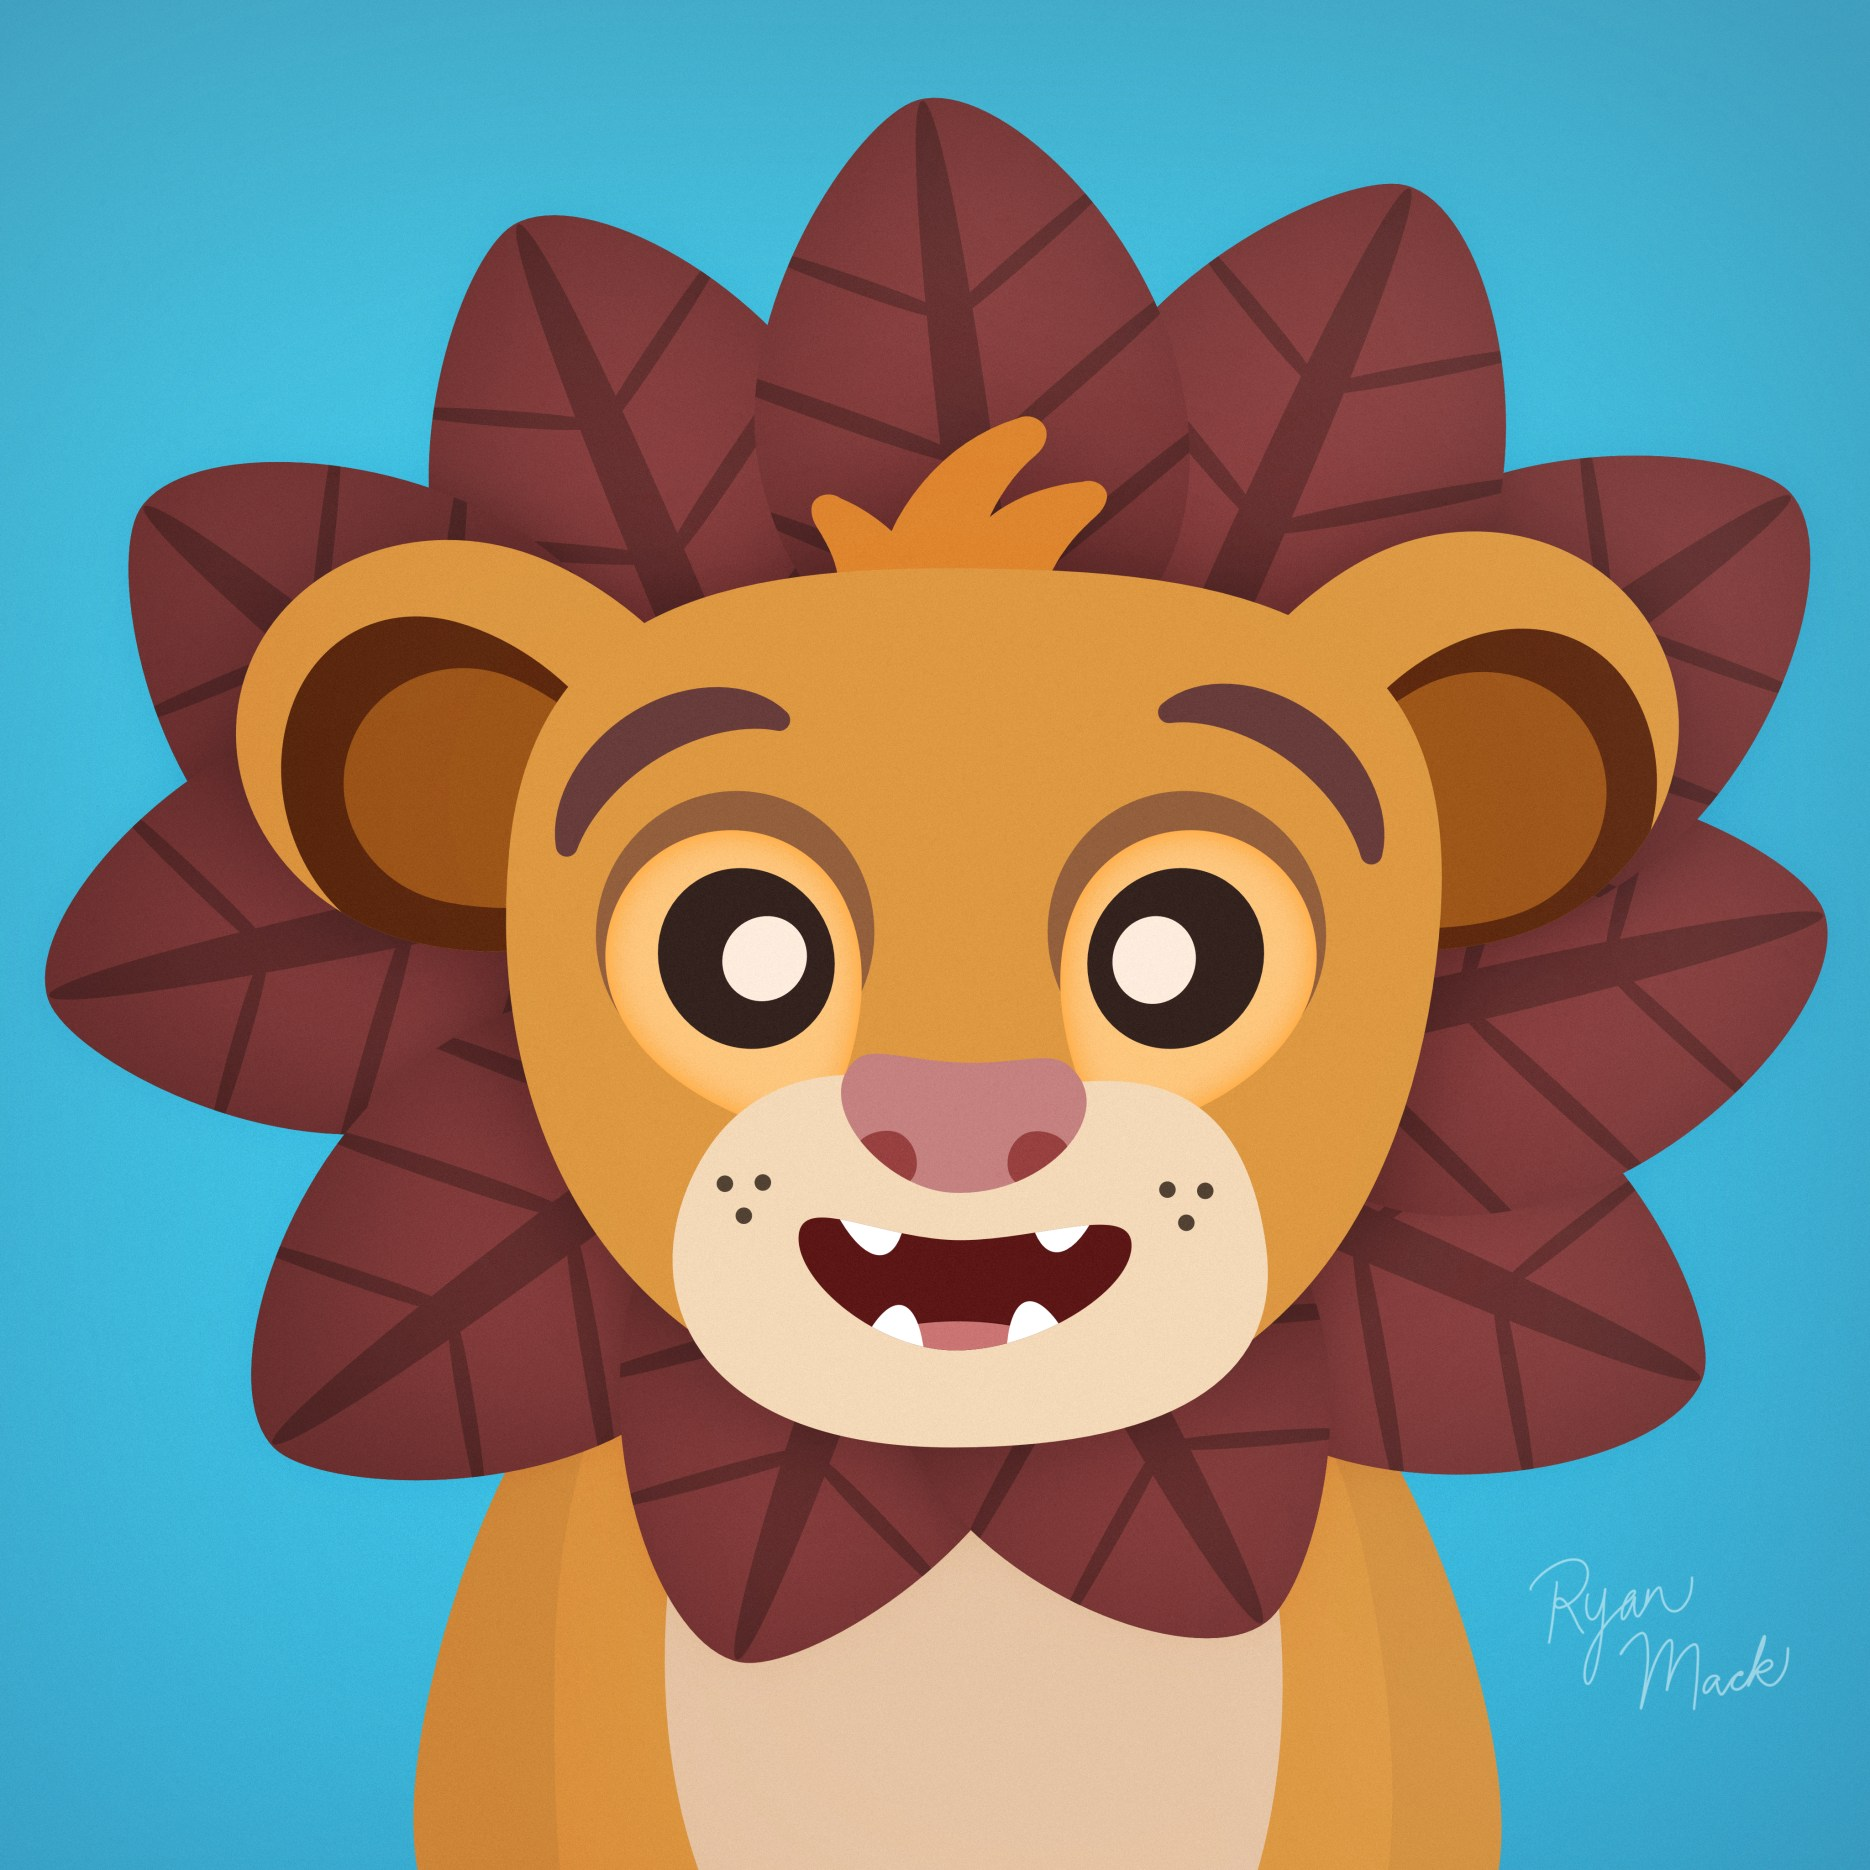 Stylized cute illustration of Young Simba from the Lion King with reddish leaves as a mane